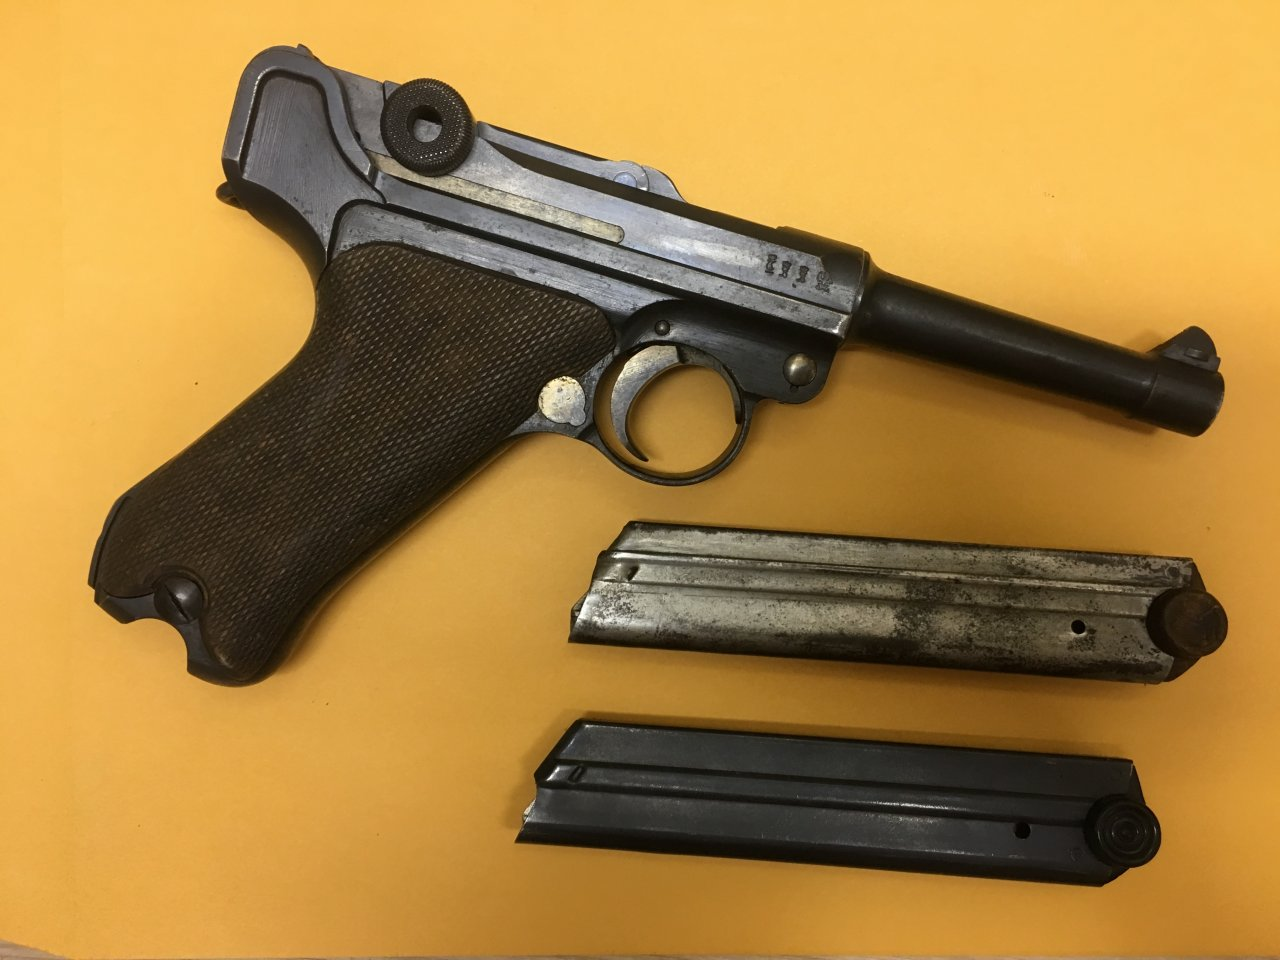 Looking For A Value On A WWII German Luger | Gun Values Board